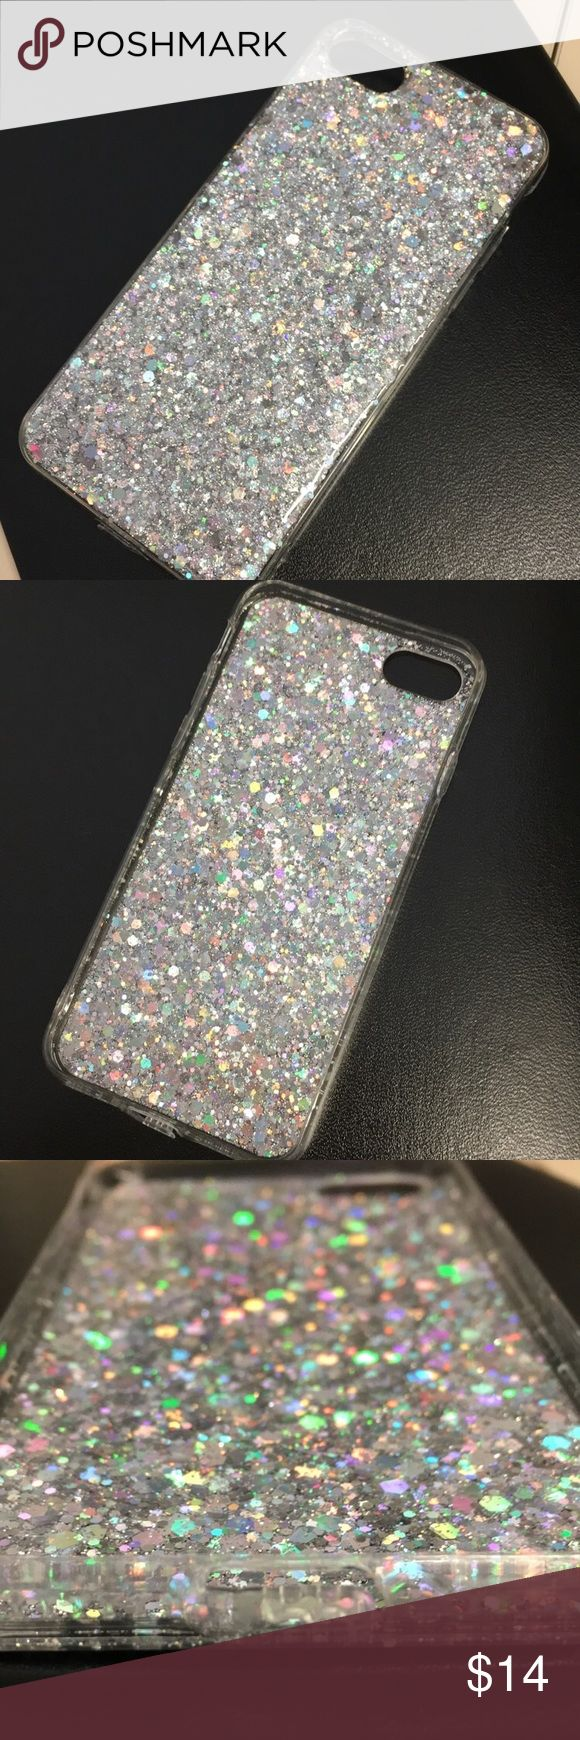 Glitter iPhone Case✨ If you sweat glitter then this phone case is for you ✨ Brand new in package.  Size: iPhone 7* Color: Silver Glitter Material: Silicone/Gel/Rubber  -Shockproof -Soft Glossy Finish -Anti-Dust Plug for Charging Port  *This case is designed for the iPhone 7, but CAN fit an iPhone 6/6s as well. The only issue you'll run into is that the headphone jack on iPhone 6/6s will be covered. Accessories Phone Cases